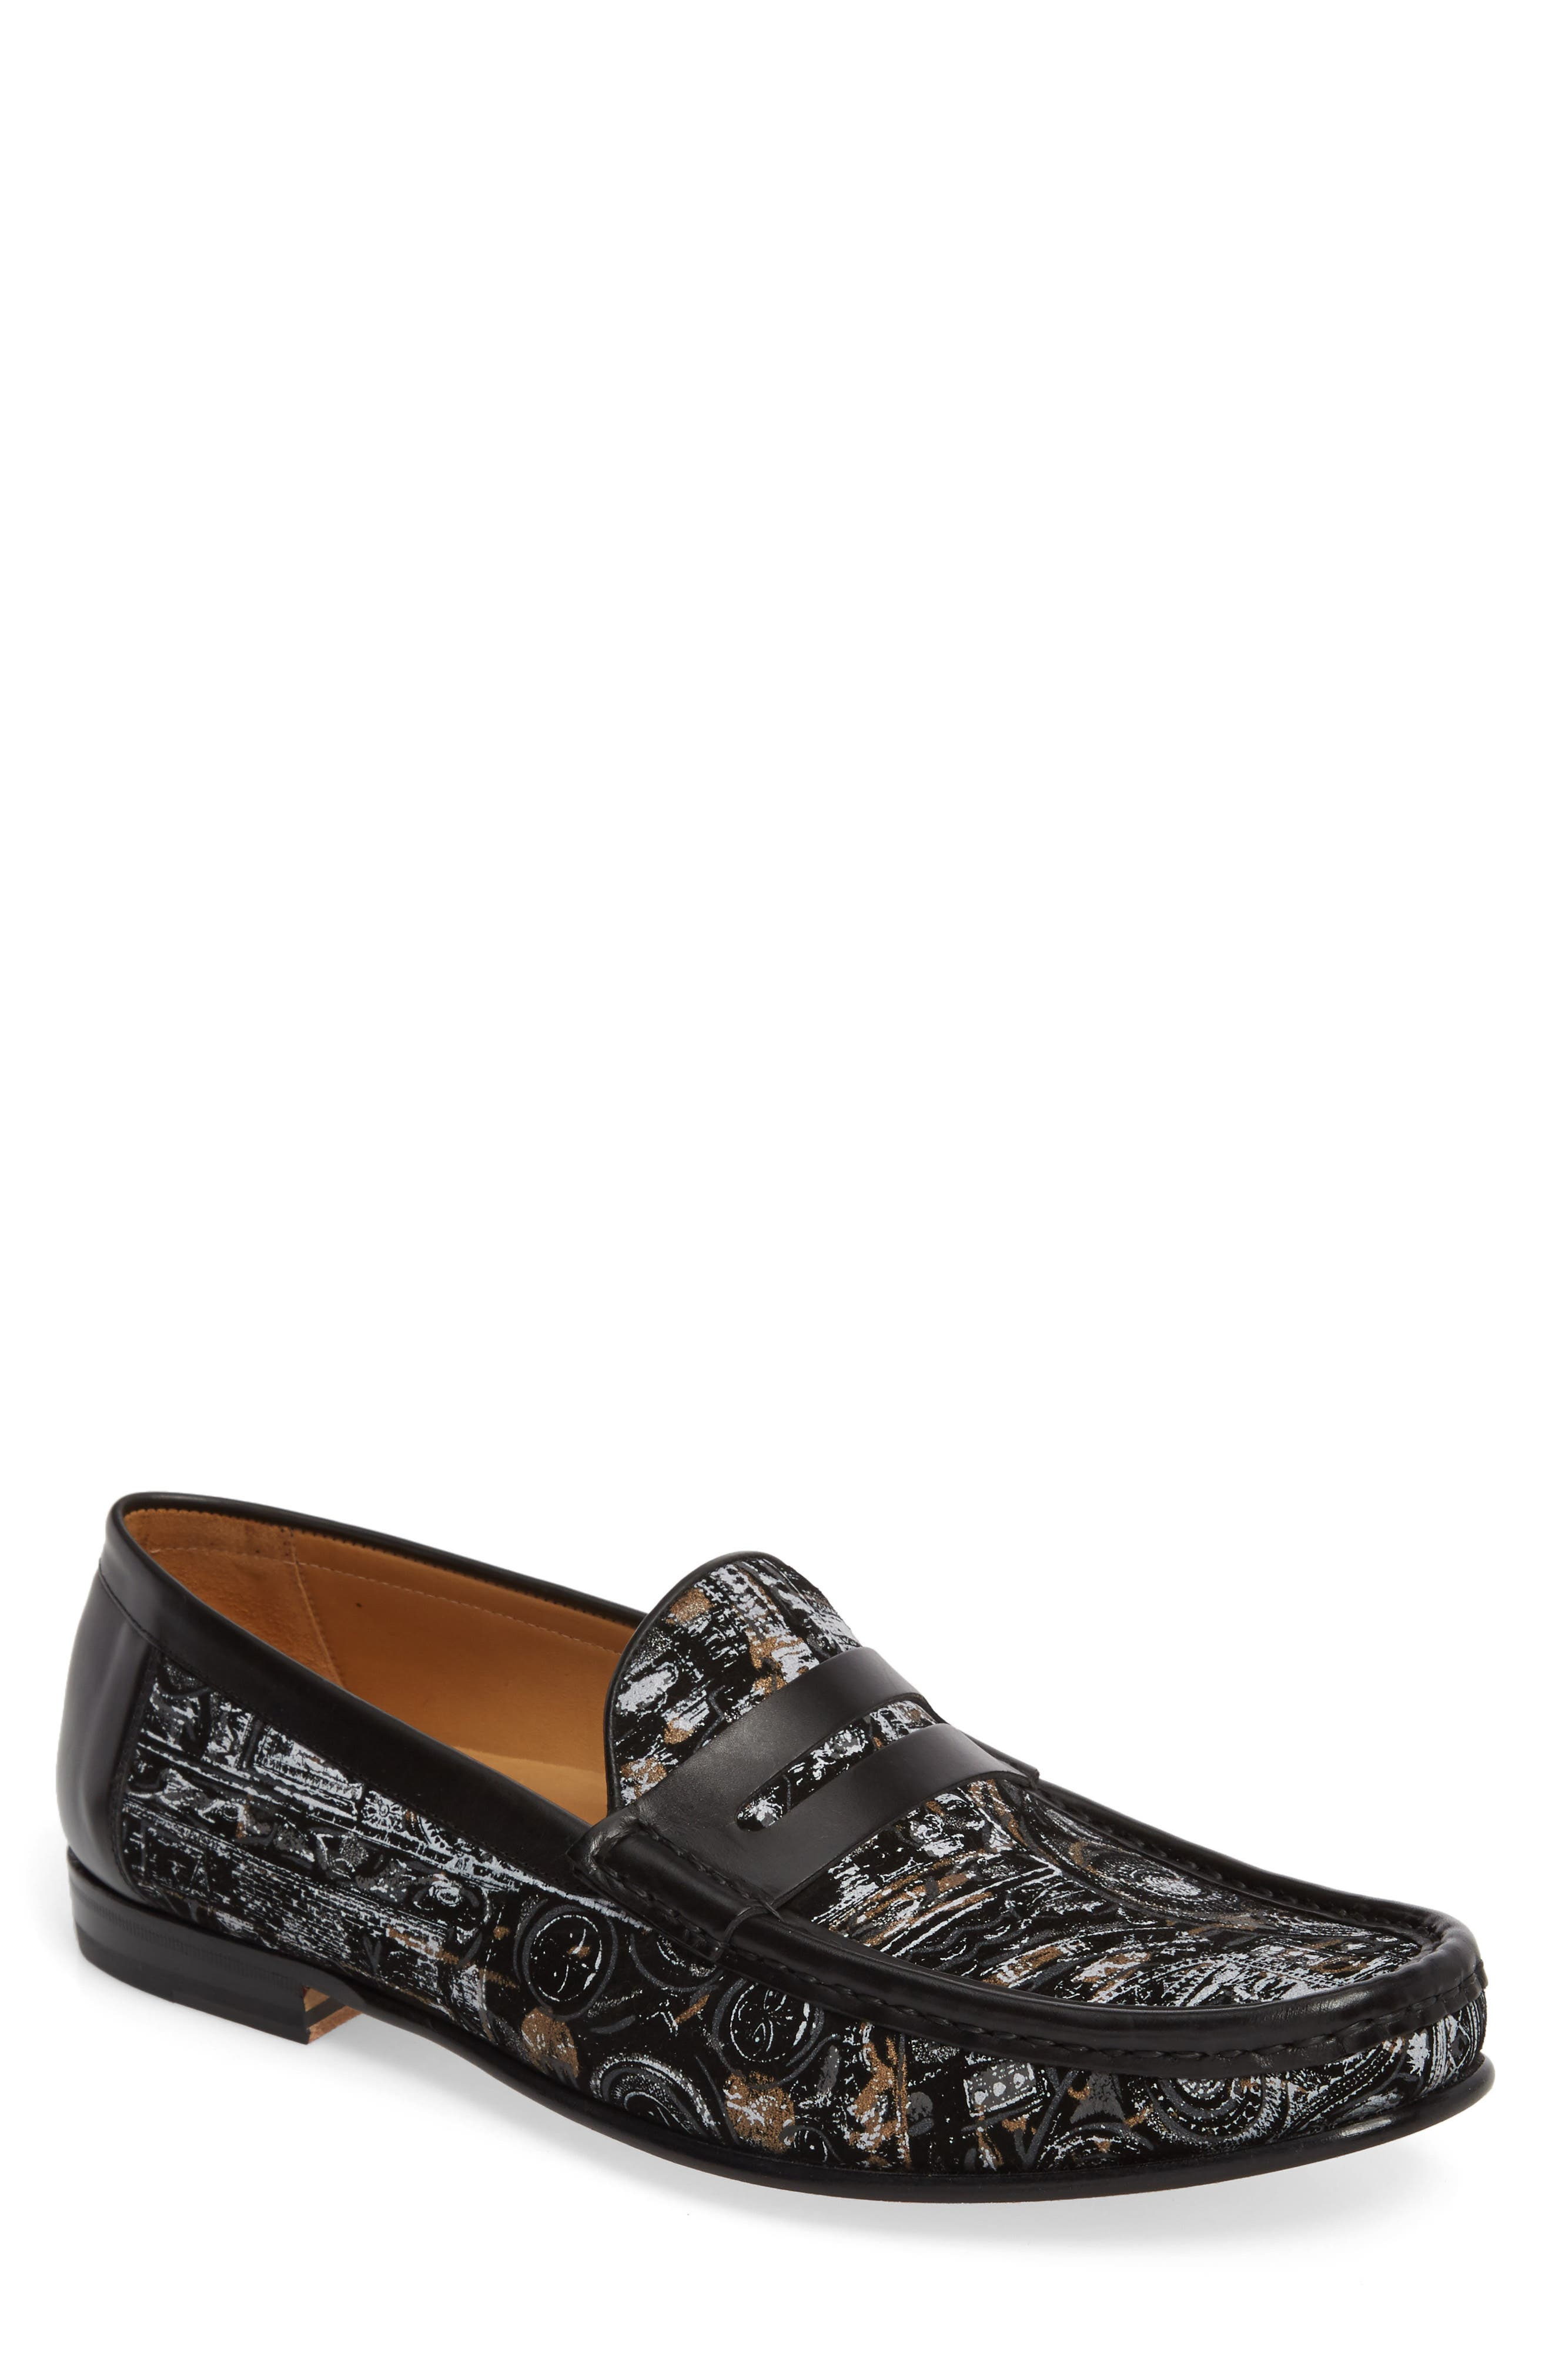 Laries II Penny Loafer,                         Main,                         color, Black Suede/ Leather